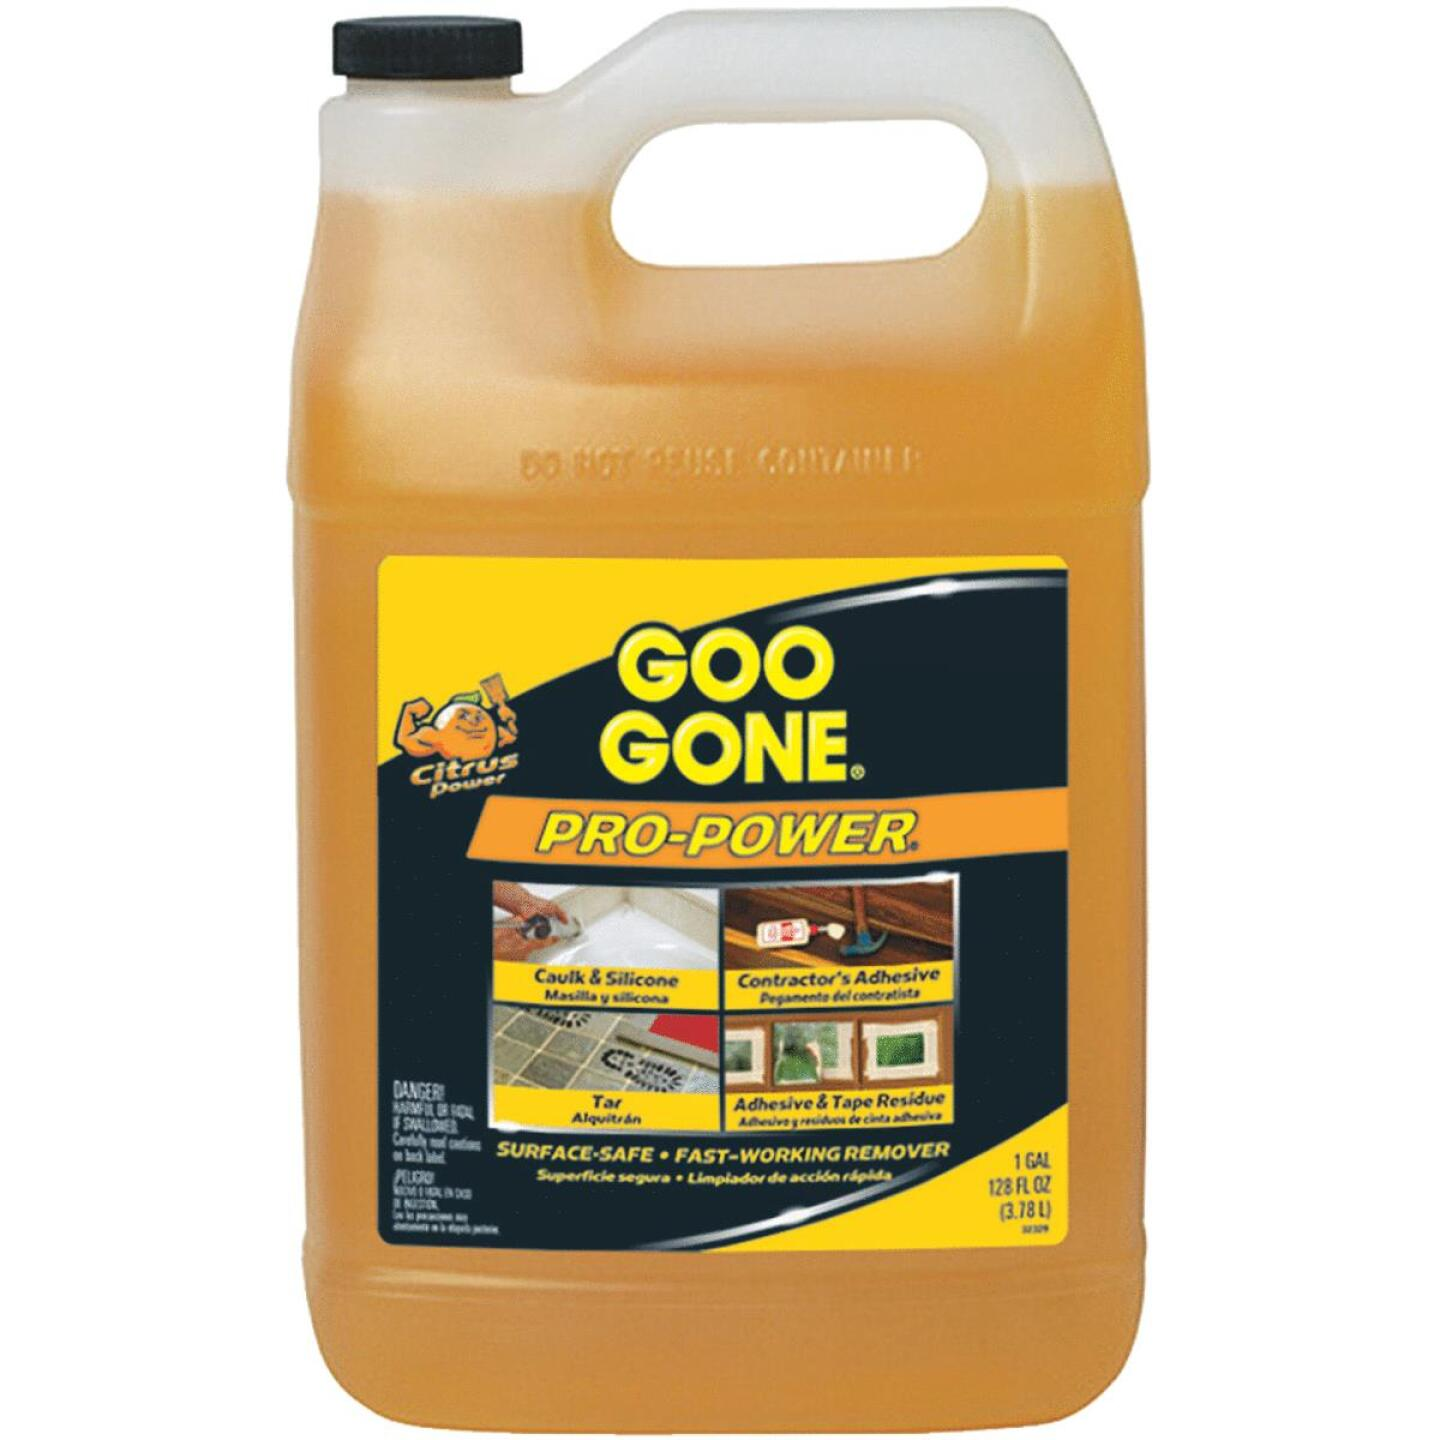 Goo Gone 1 Gal. Pro-Power Adhesive Remover Image 292